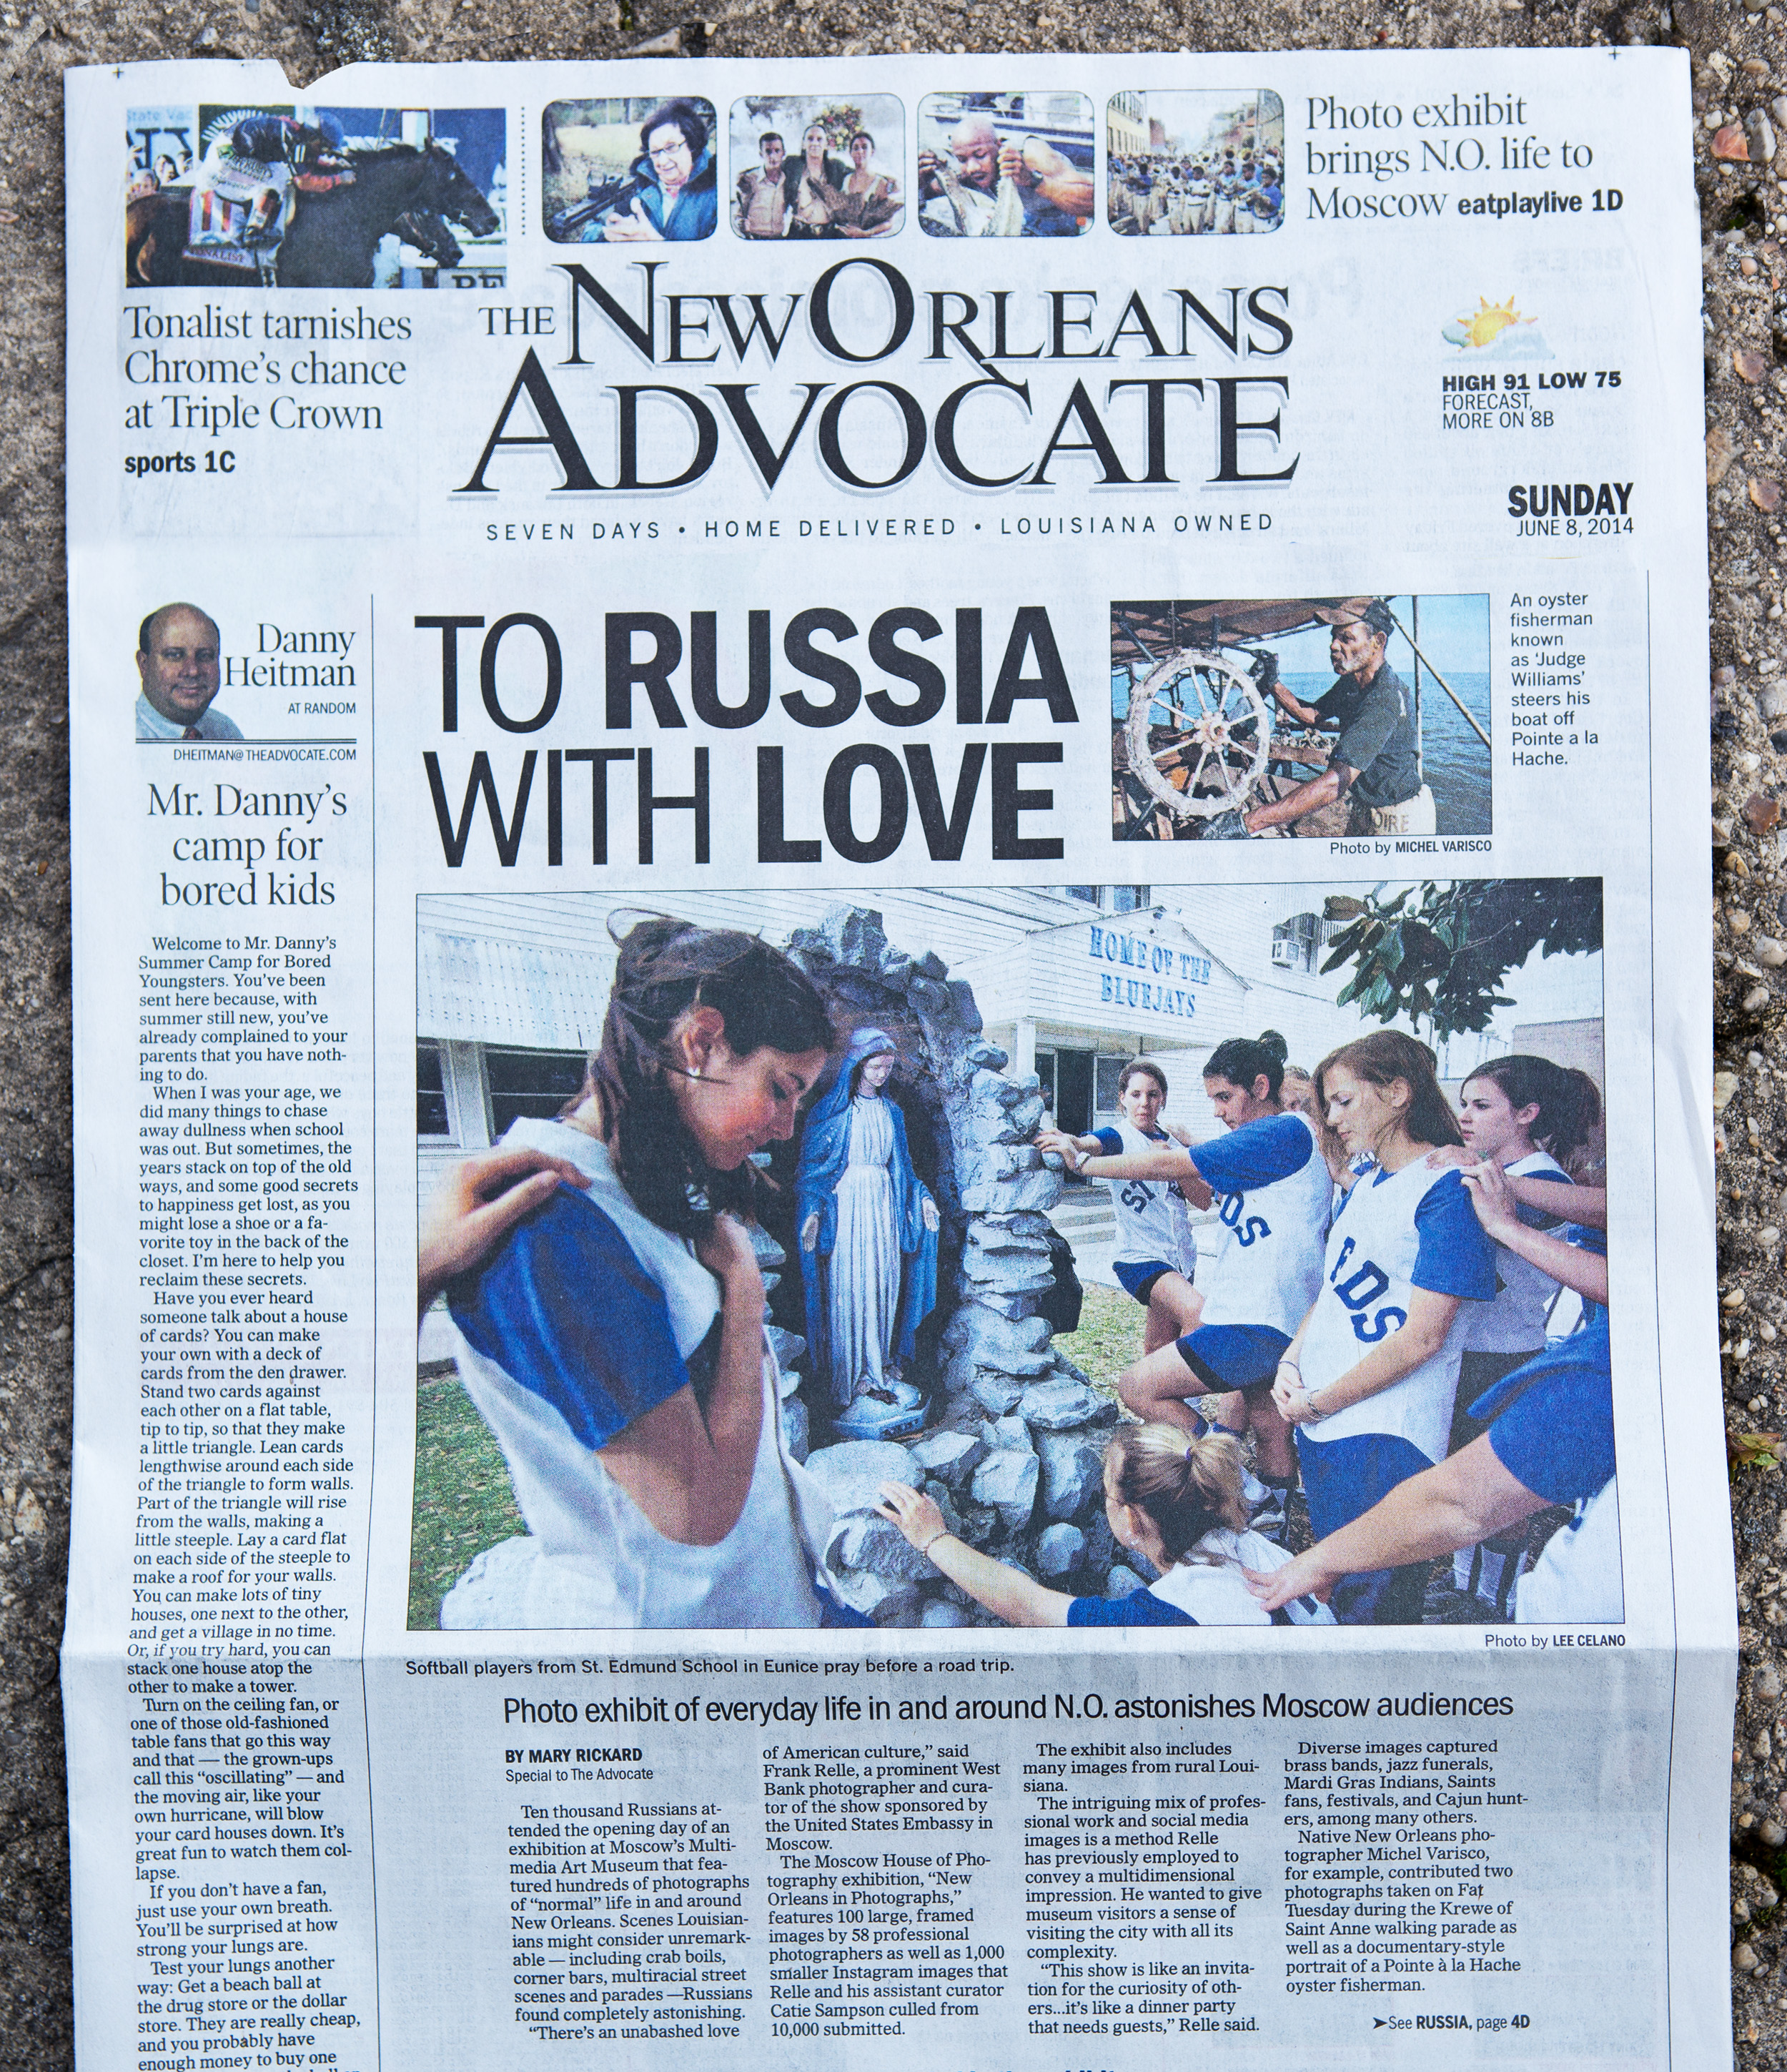 The New Orleans to Moscow Exhibition is in today's paper. Thanks to Mary Rickard and The Advocate for the engaging feature story.